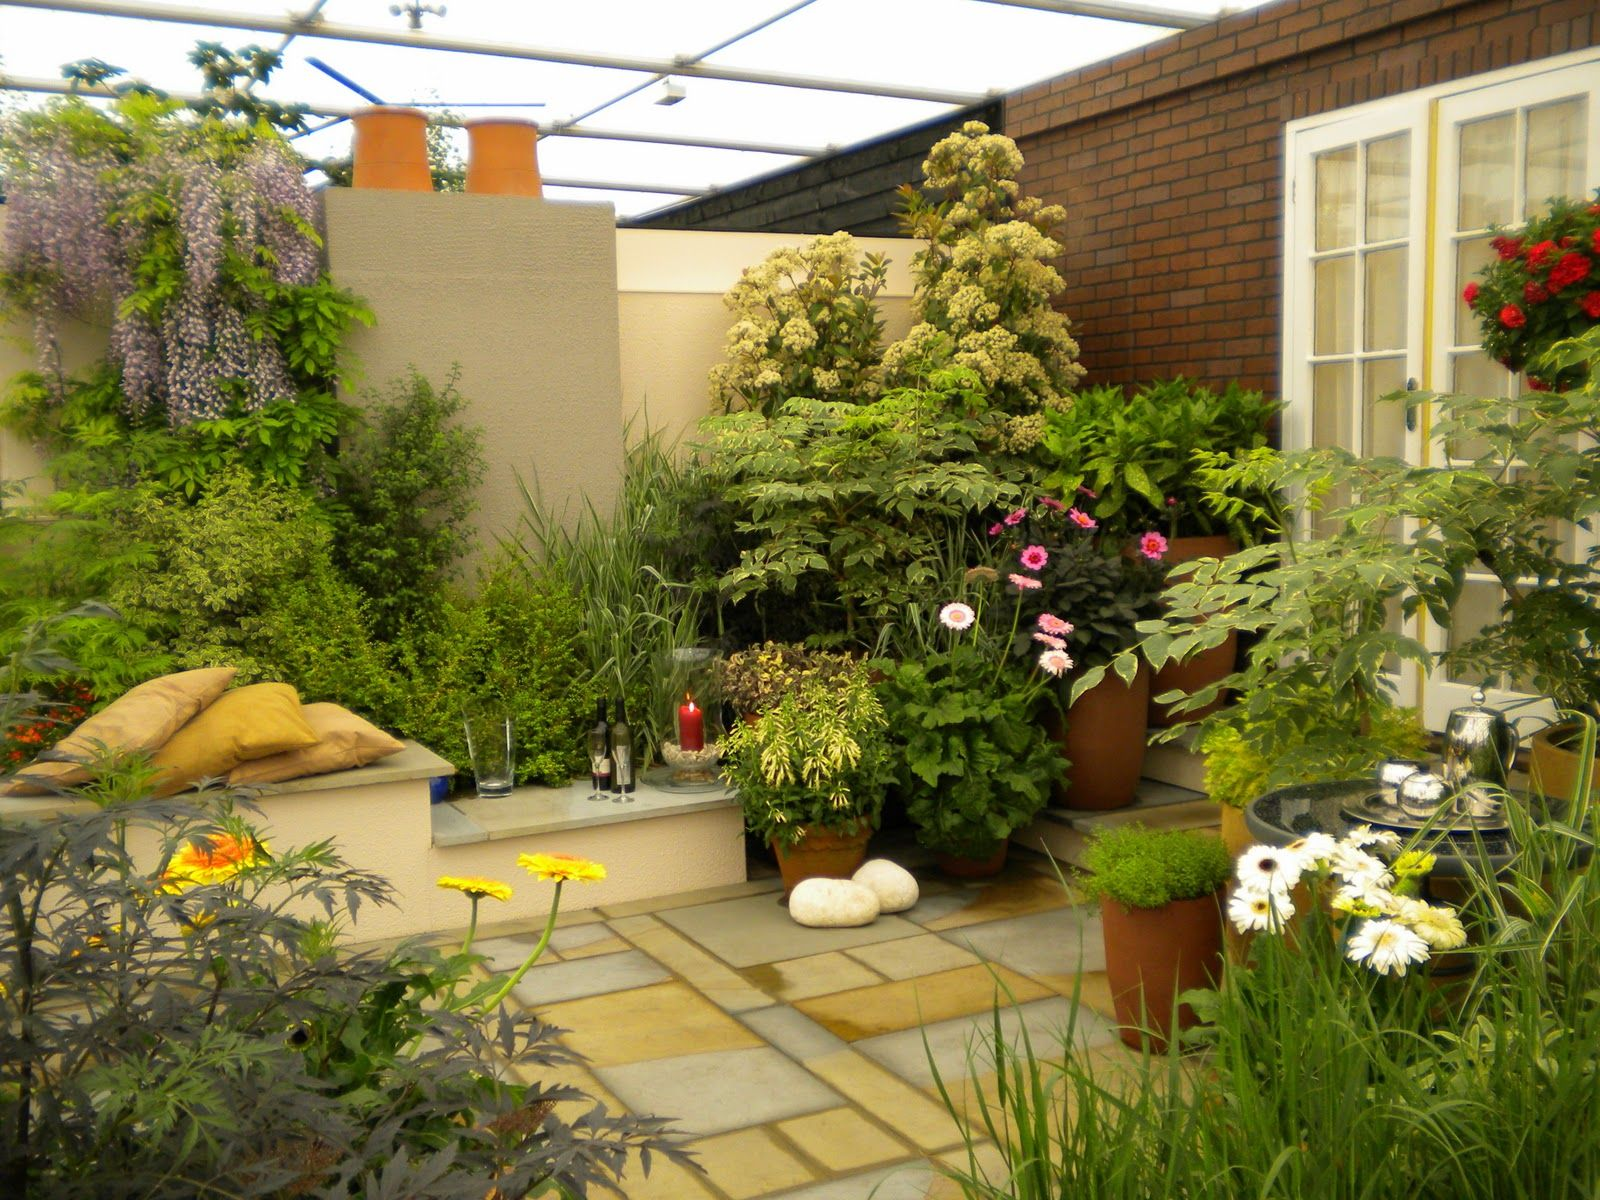 Beautiful small terrace gardens - Decorating The Roof To Look Like A Paradise